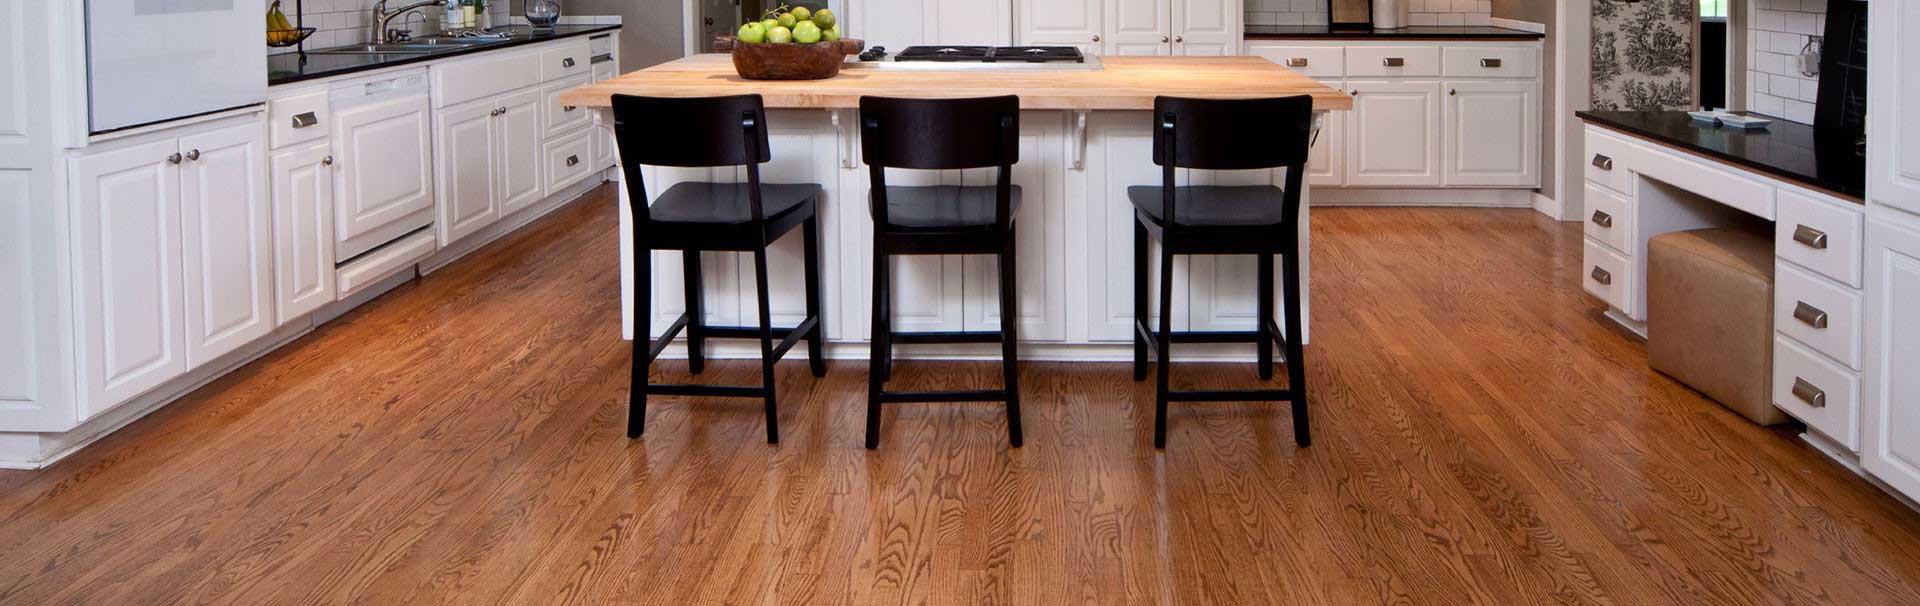 Engineered Wood Flooring Sales and Installations